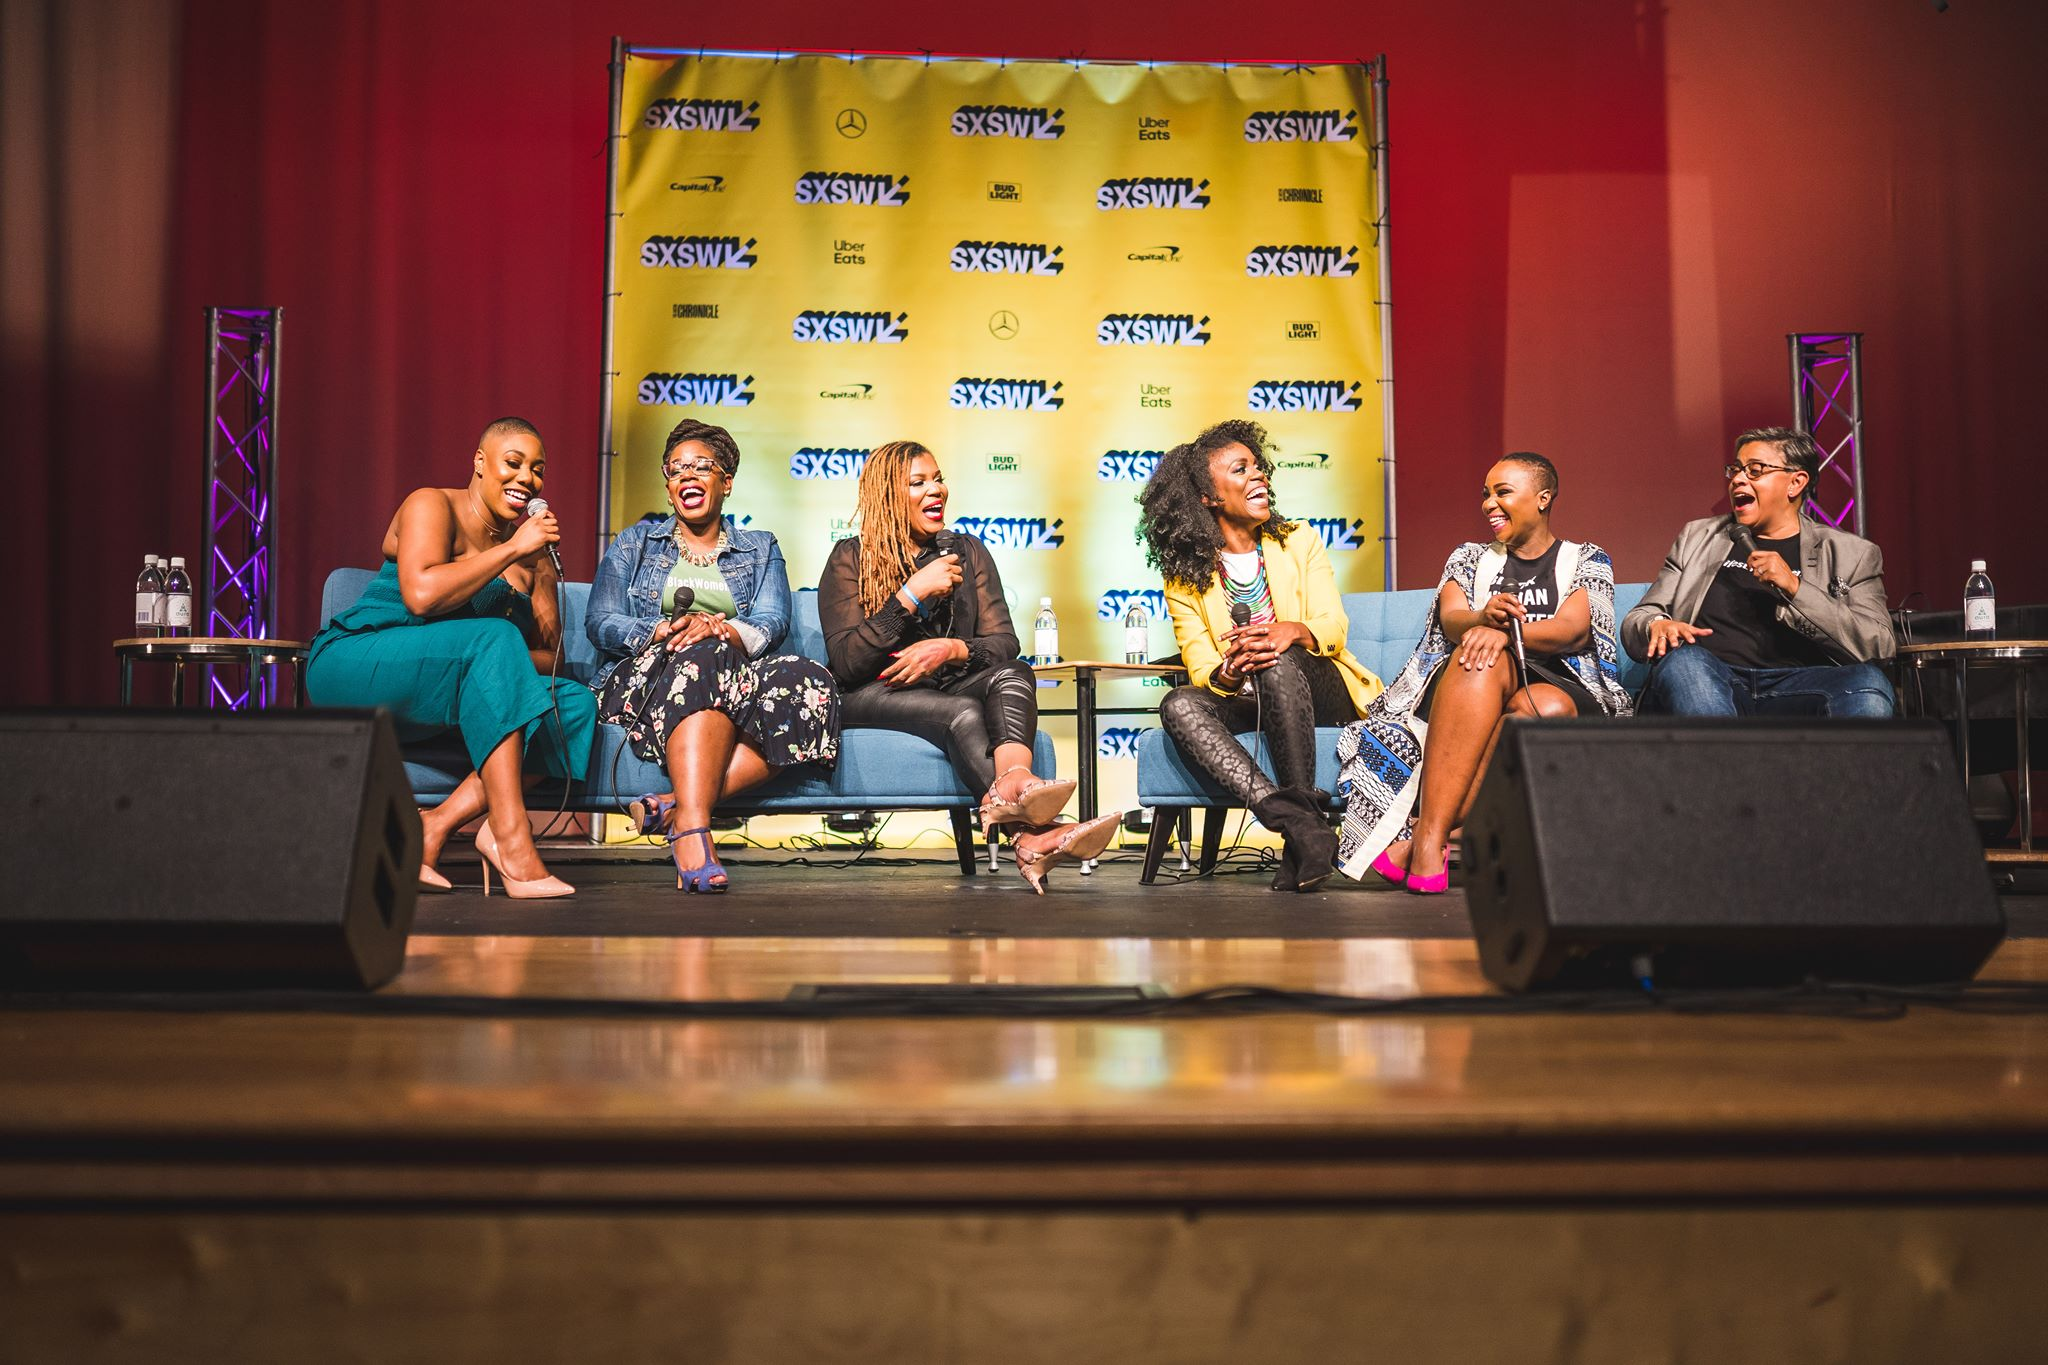 Higher Heights and Essence Magazine present #BlackWomenLead at SxSXW, powered by The League. Austin, TX. 2019.